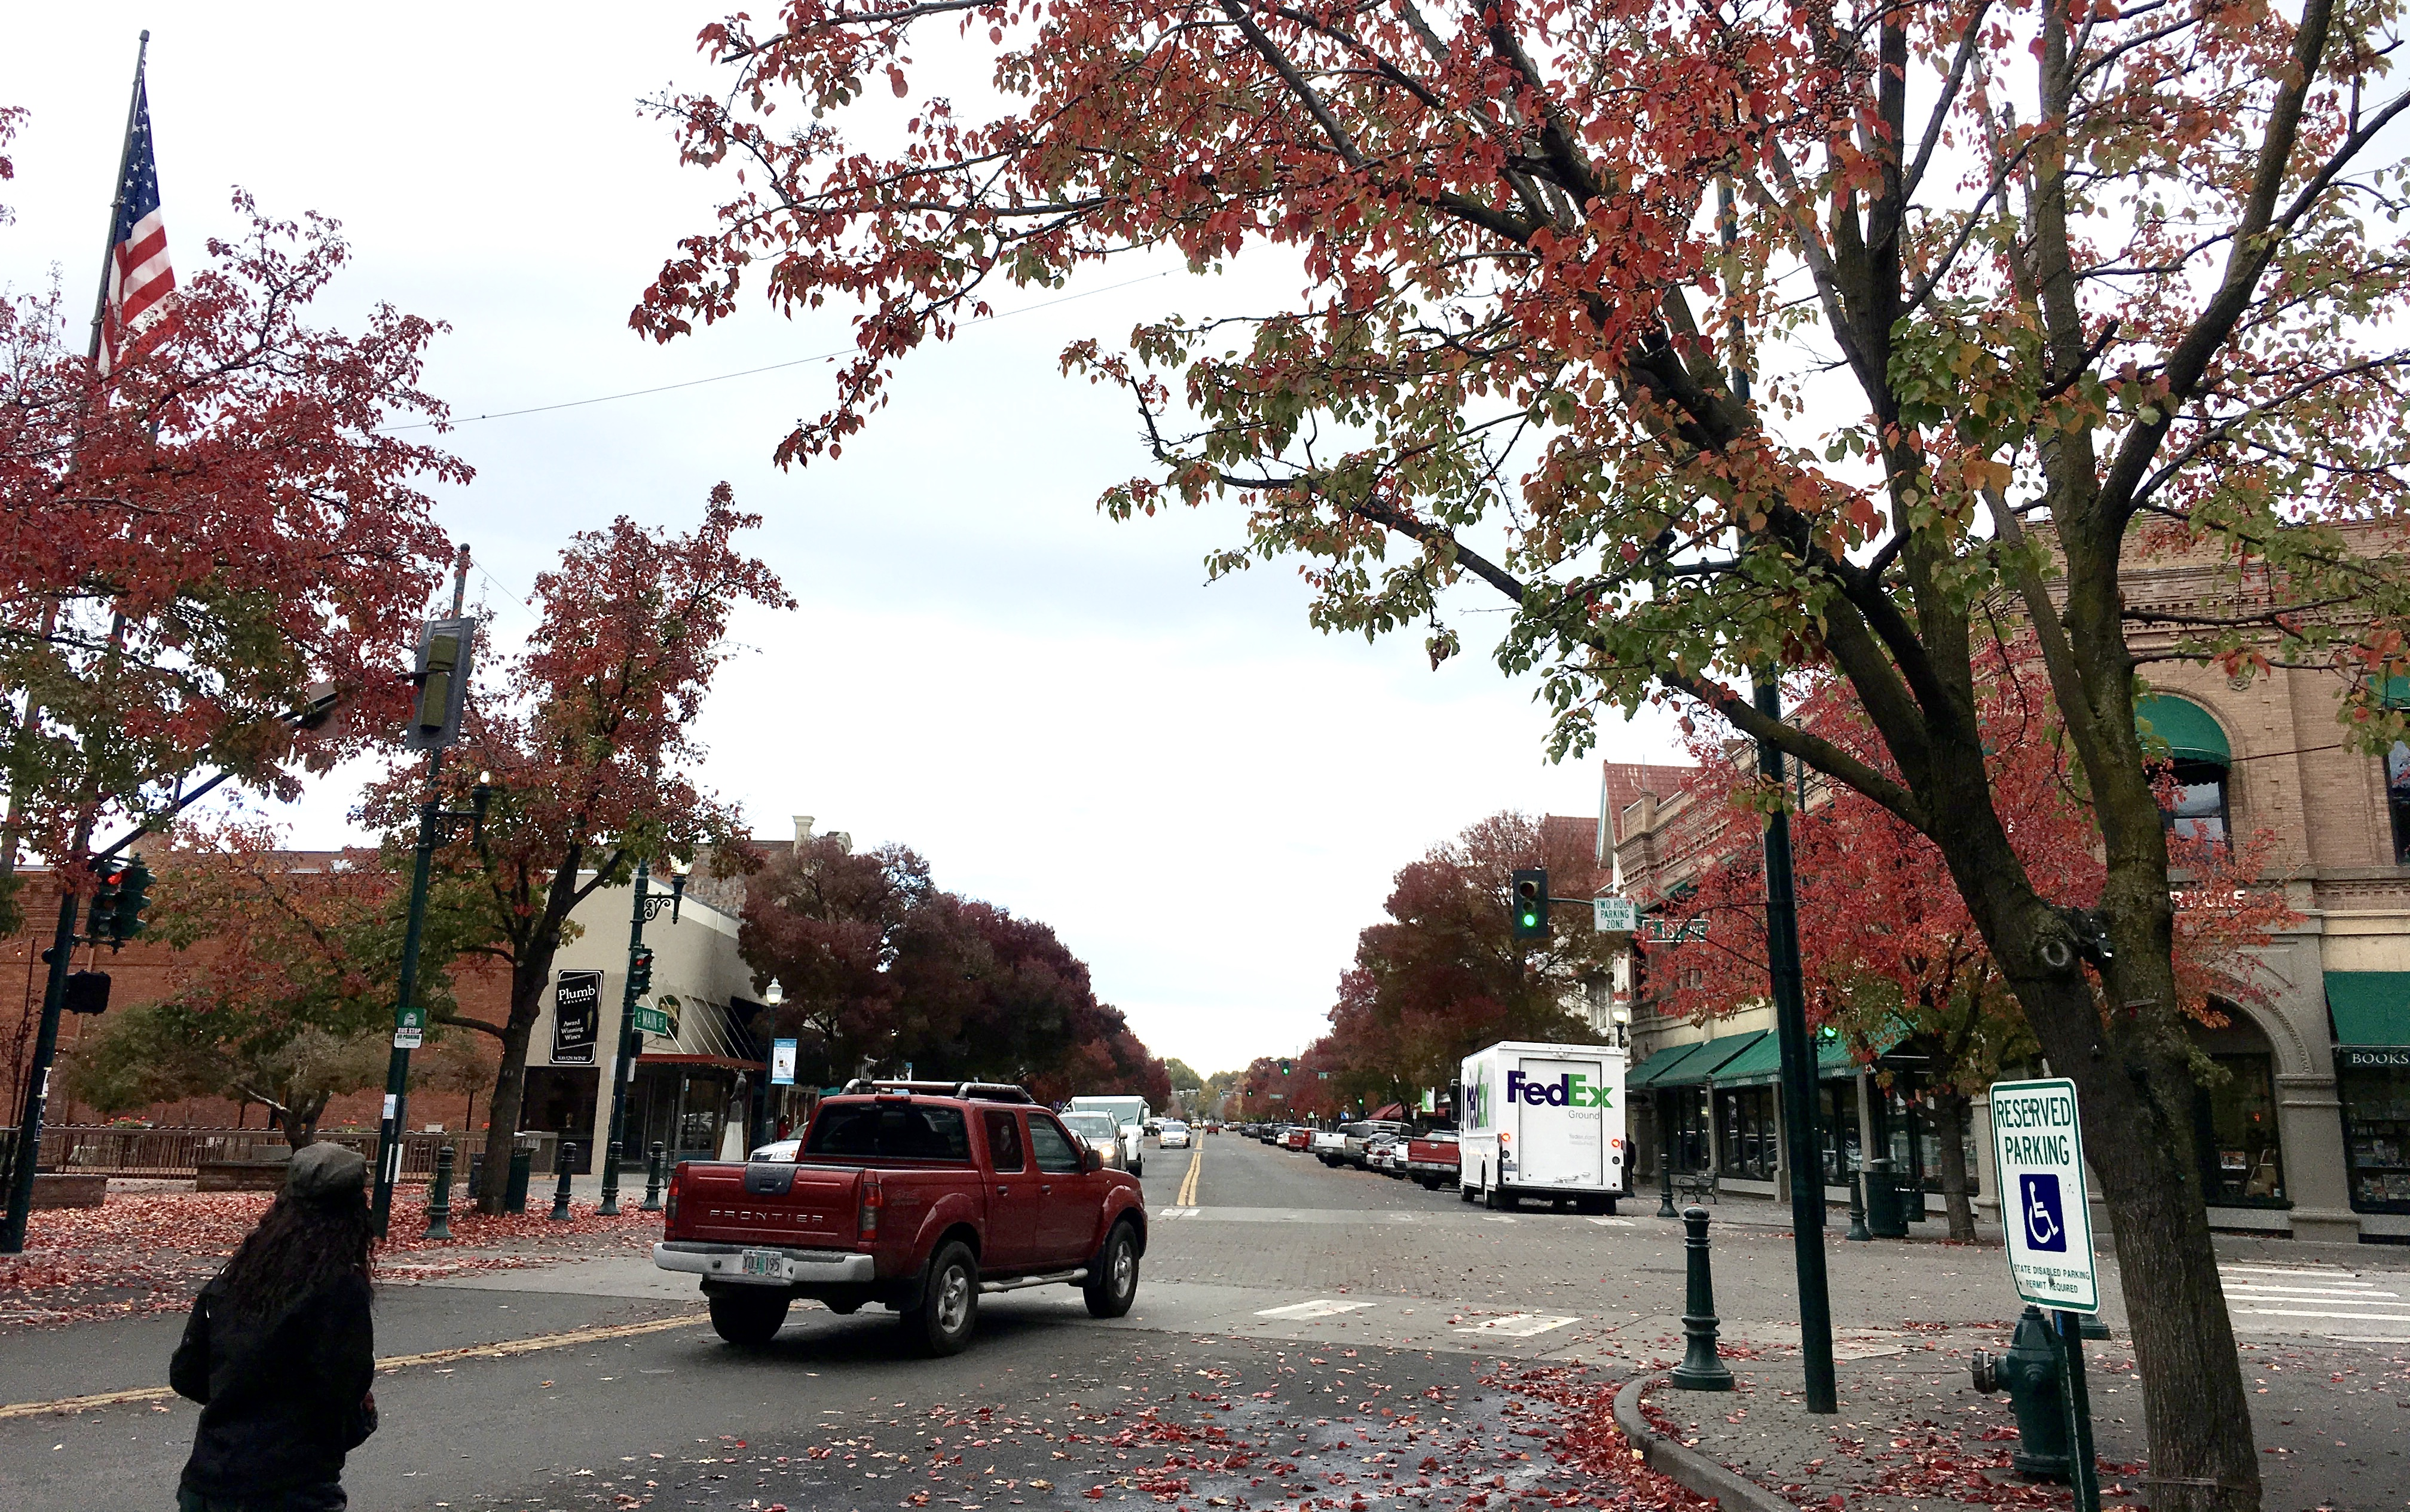 Downtown Walla Walla, Washington